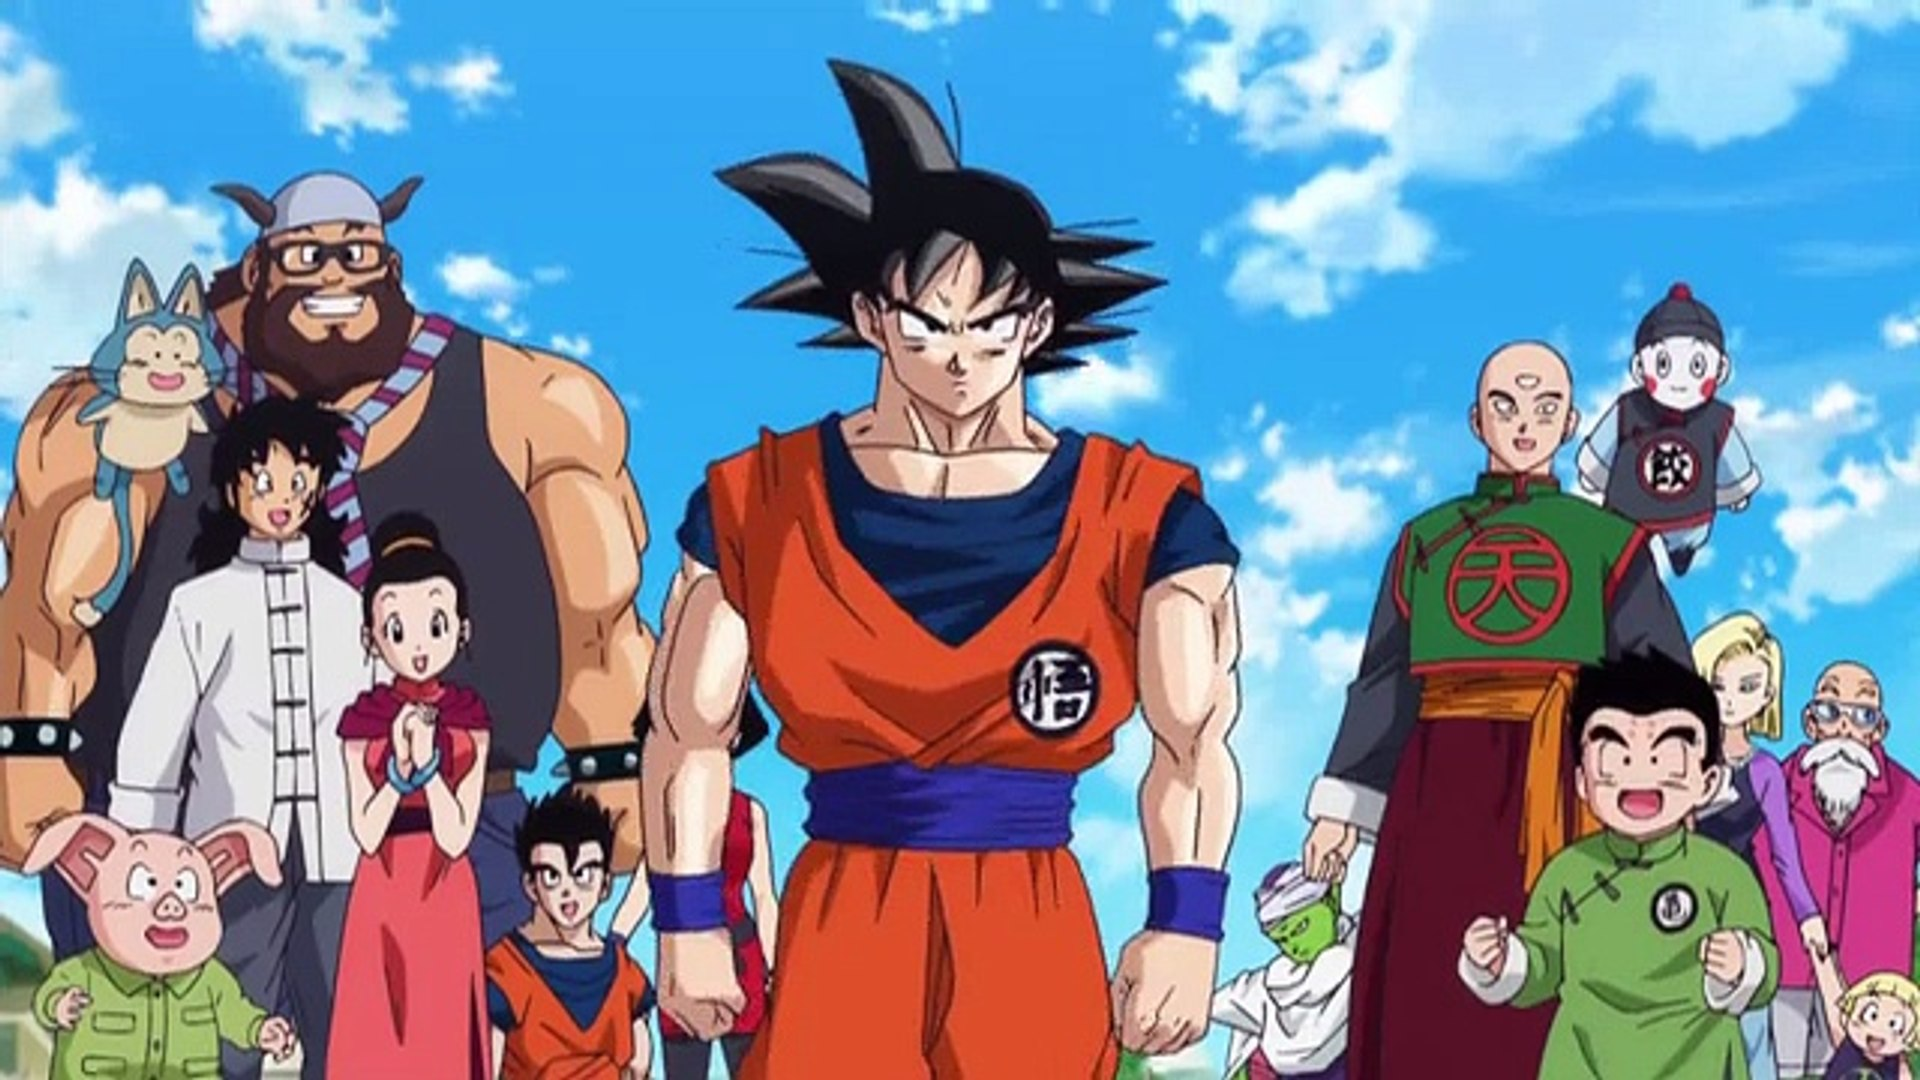 Dragon Ball Z - Battle of Gods Official US Release Trailer (2014) - Anime Action Movie HD new action